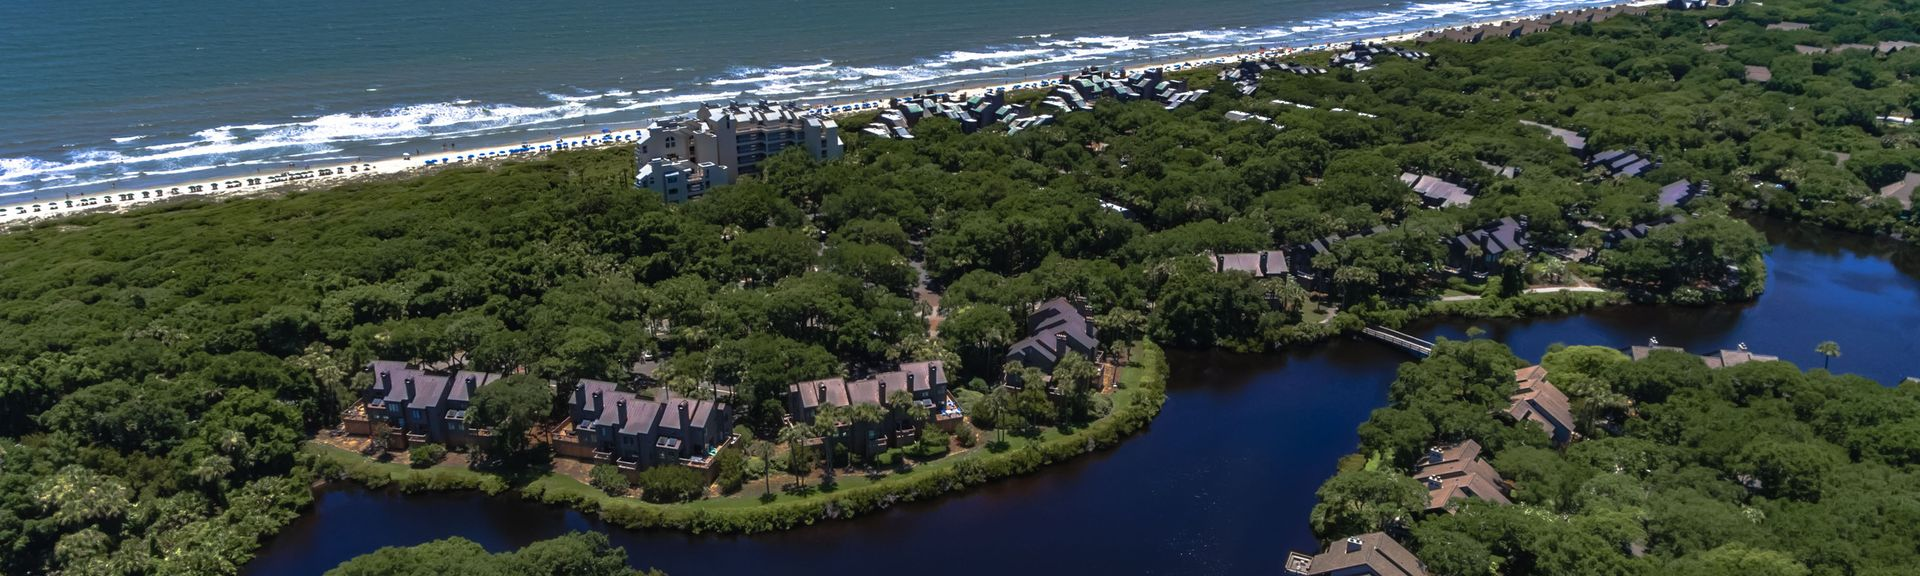 Parkside Villas (Kiawah Island, Carolina do Sul, Estados Unidos)